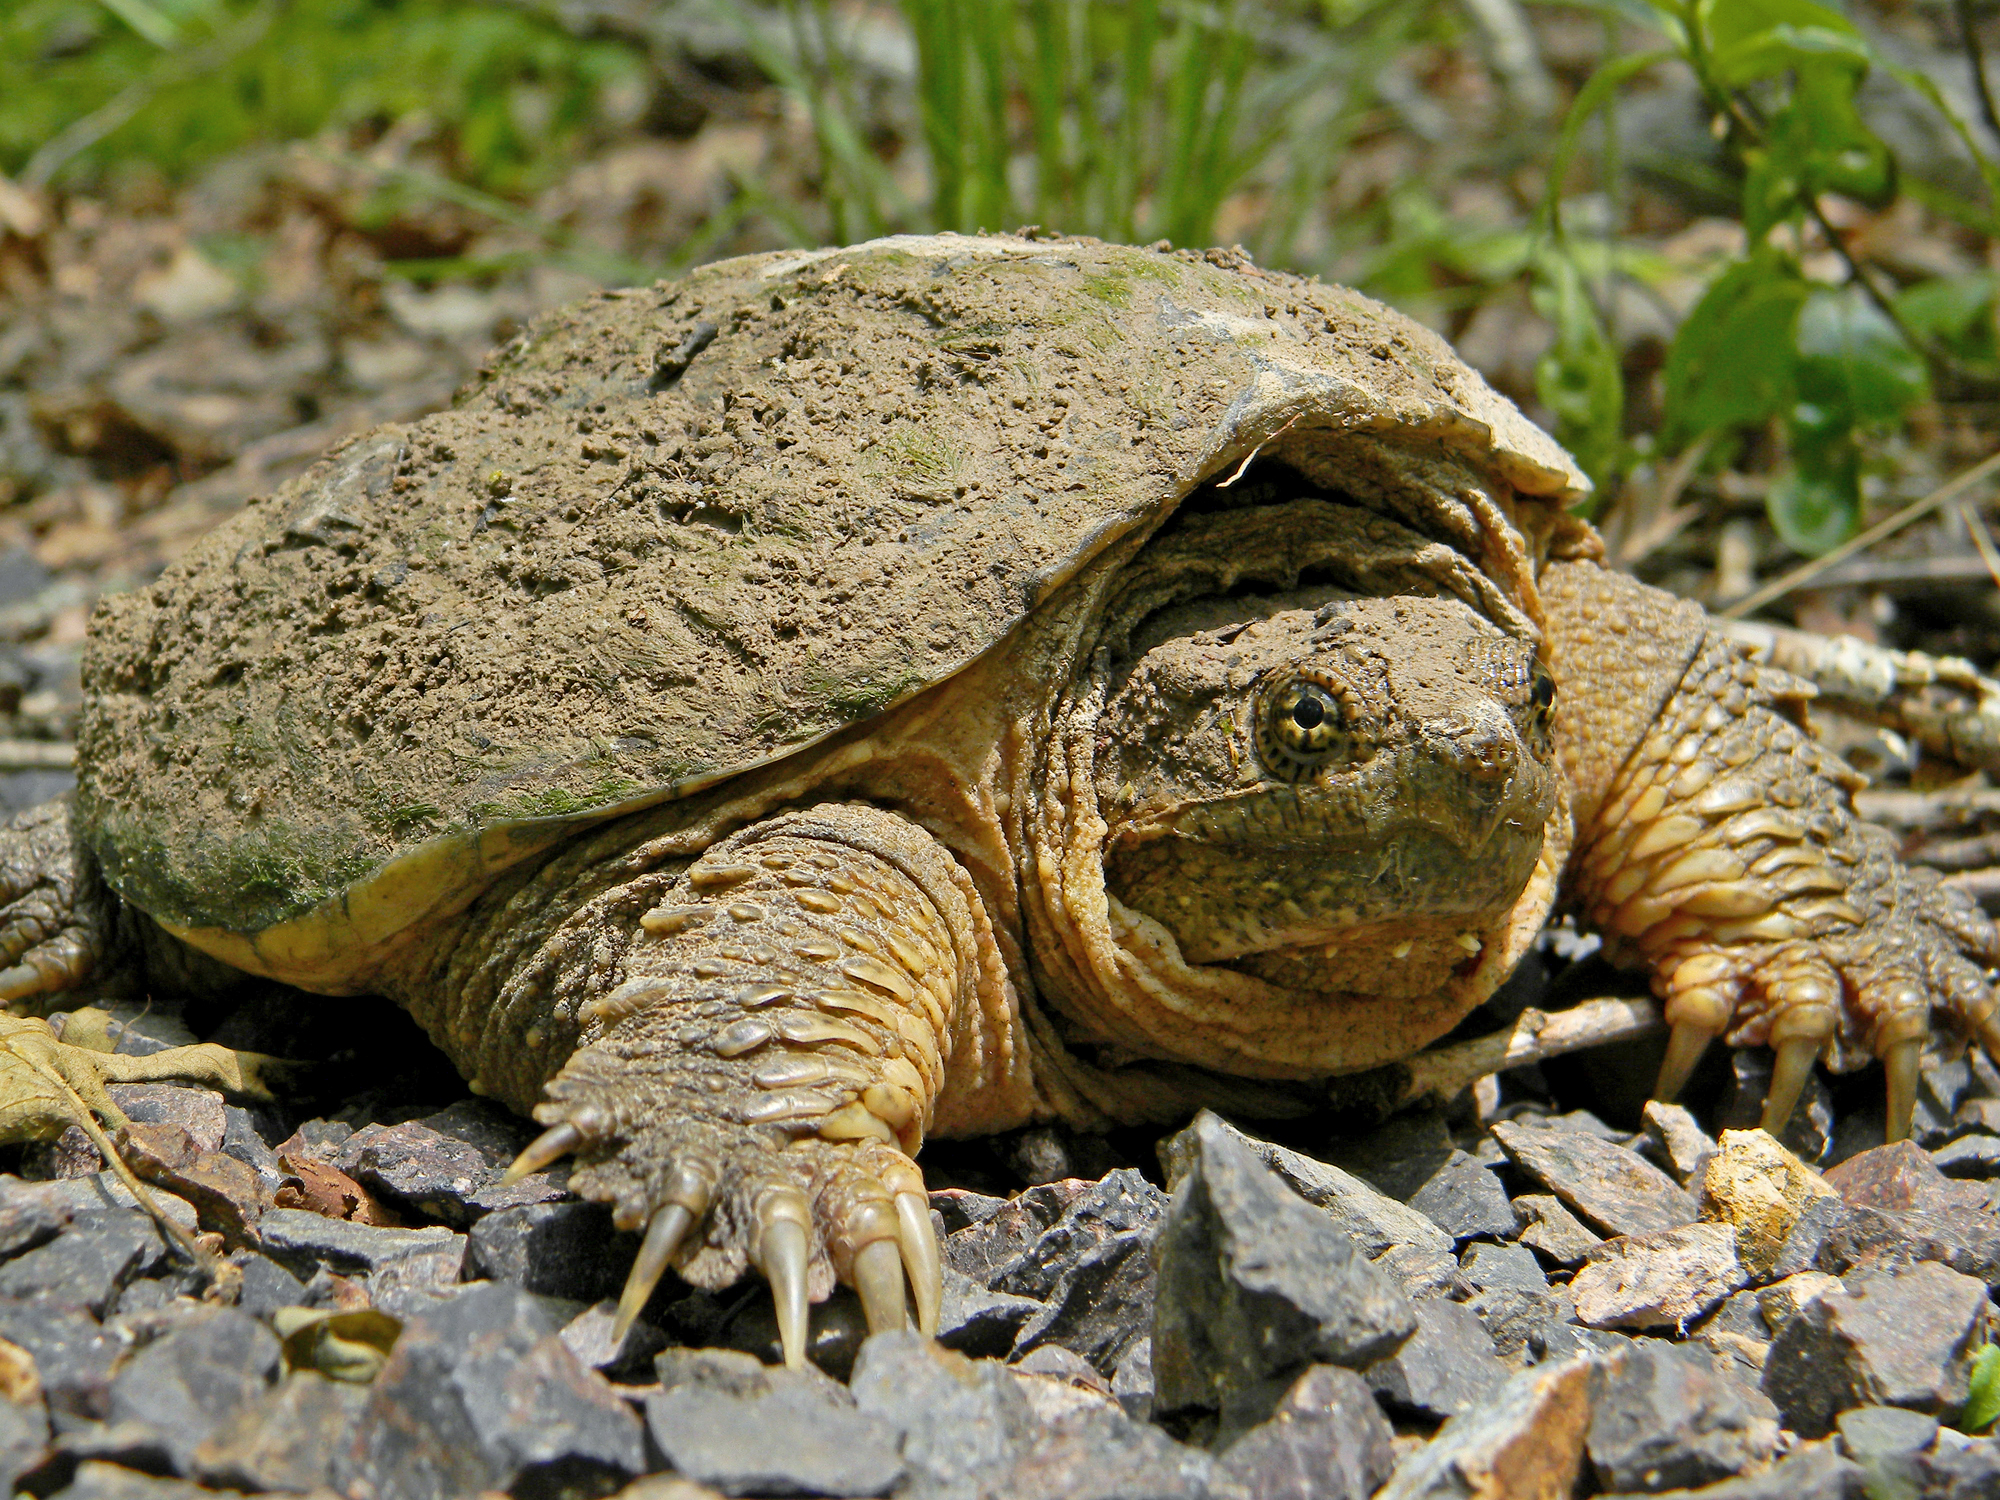 Common_Snapping_Turtle_Close_Up